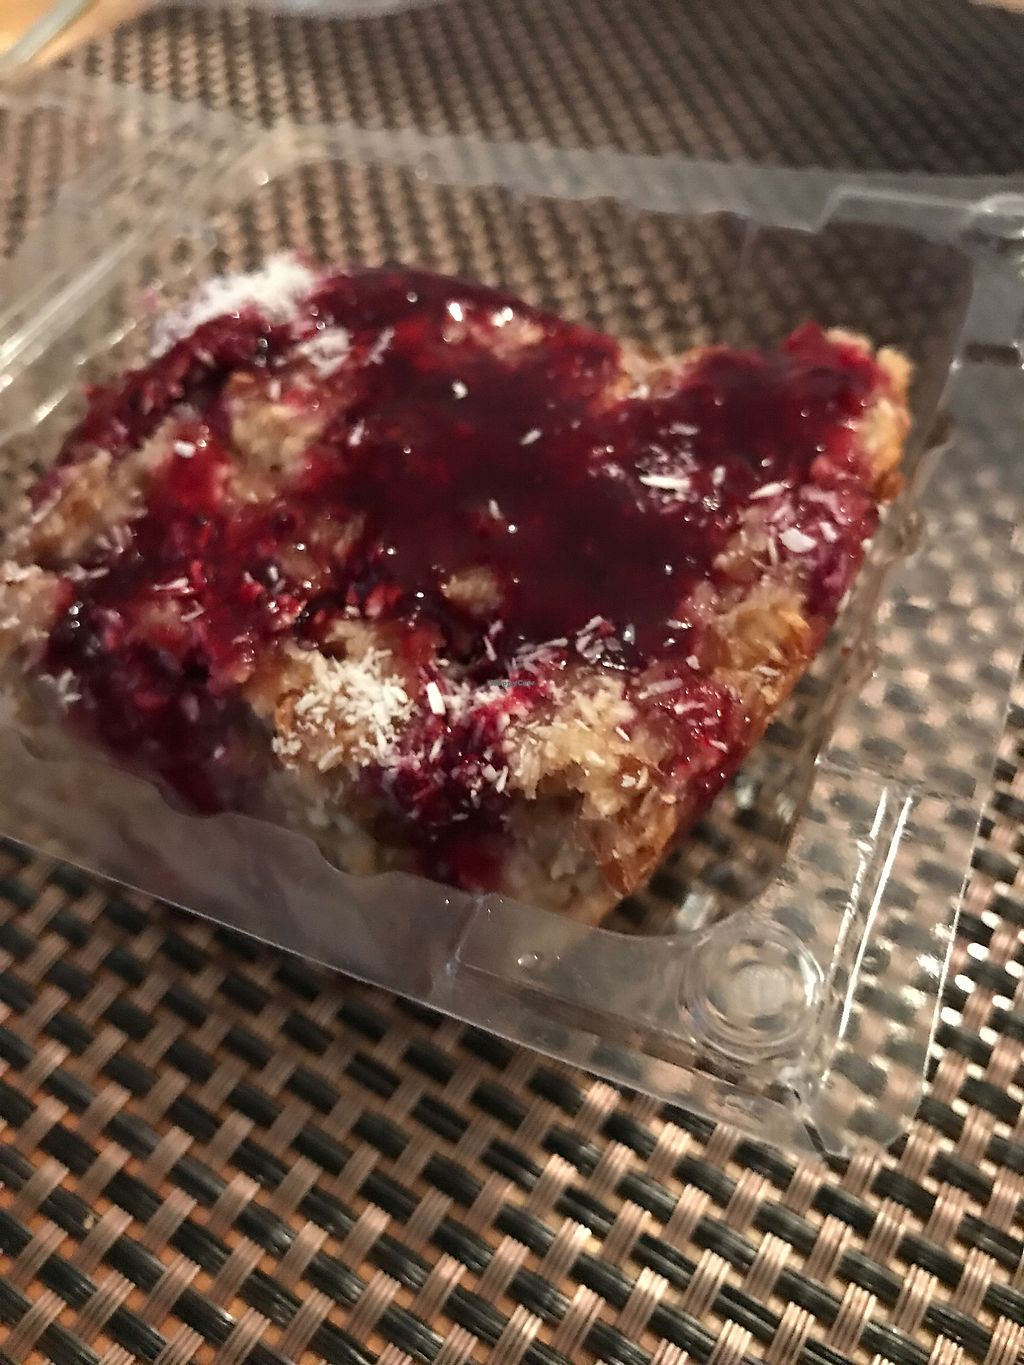 """Photo of CLOSED: Zaziv Vegan Bistro  by <a href=""""/members/profile/candybaaby"""">candybaaby</a> <br/>Blueberry dessert <br/> September 11, 2017  - <a href='/contact/abuse/image/74820/303298'>Report</a>"""